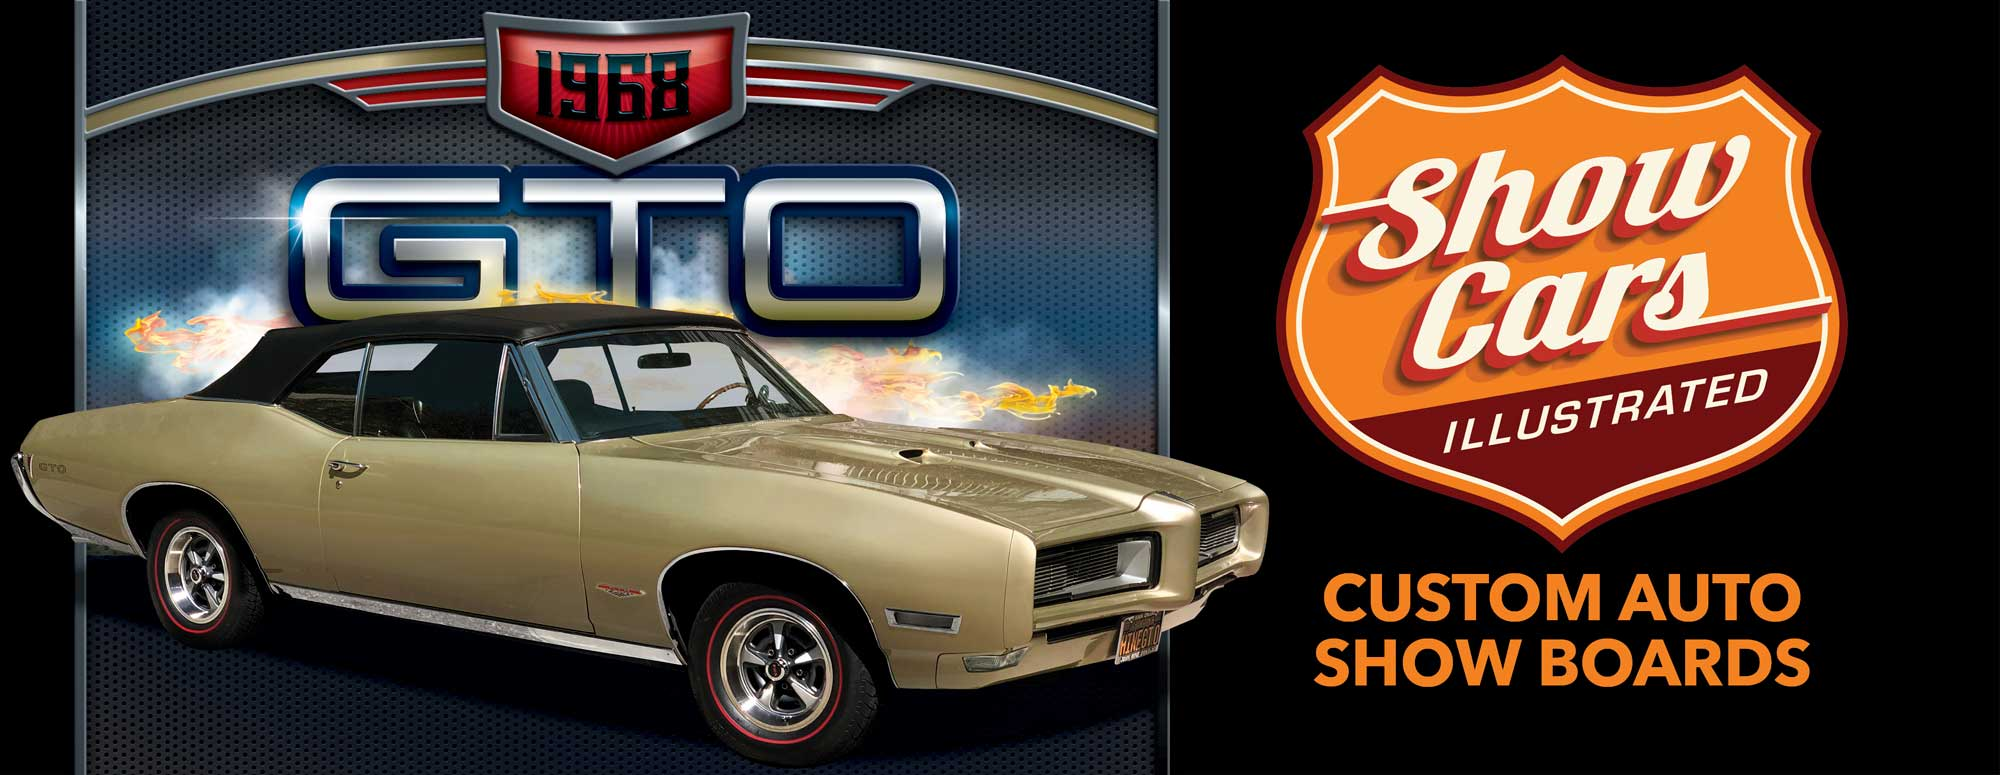 Show_Cars_Illustrated_1968-GTO-2000px